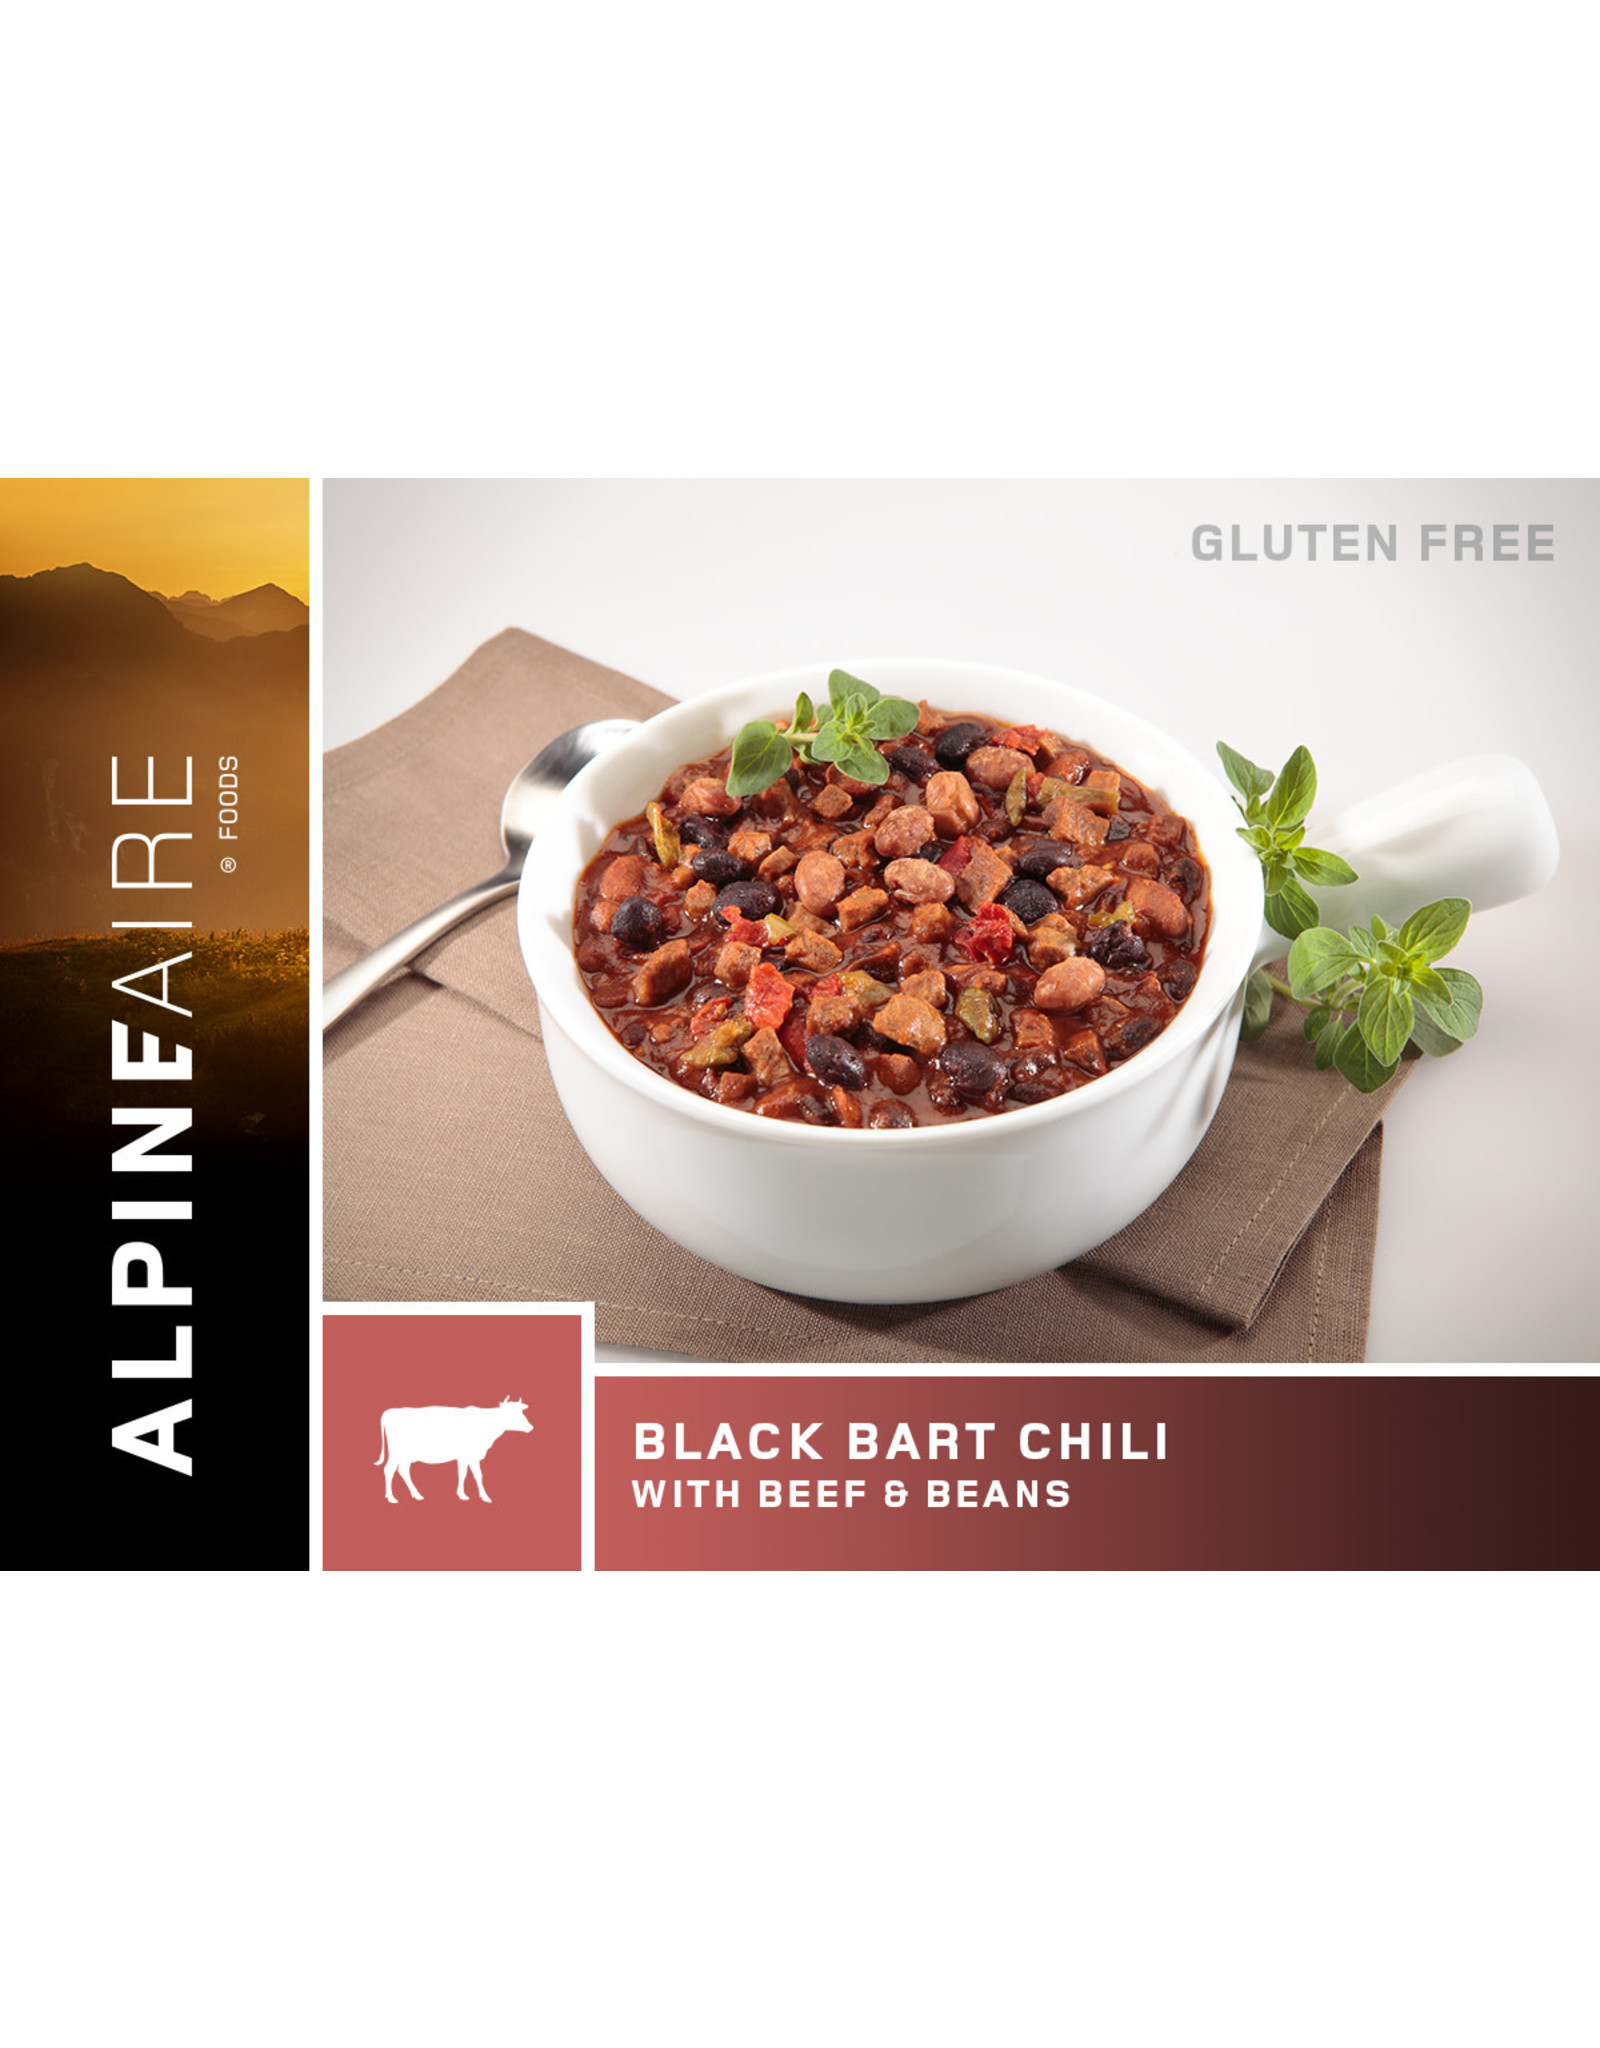 ALPINE FAIRE BLACK BART CHILI WITH BEEF & BEANS